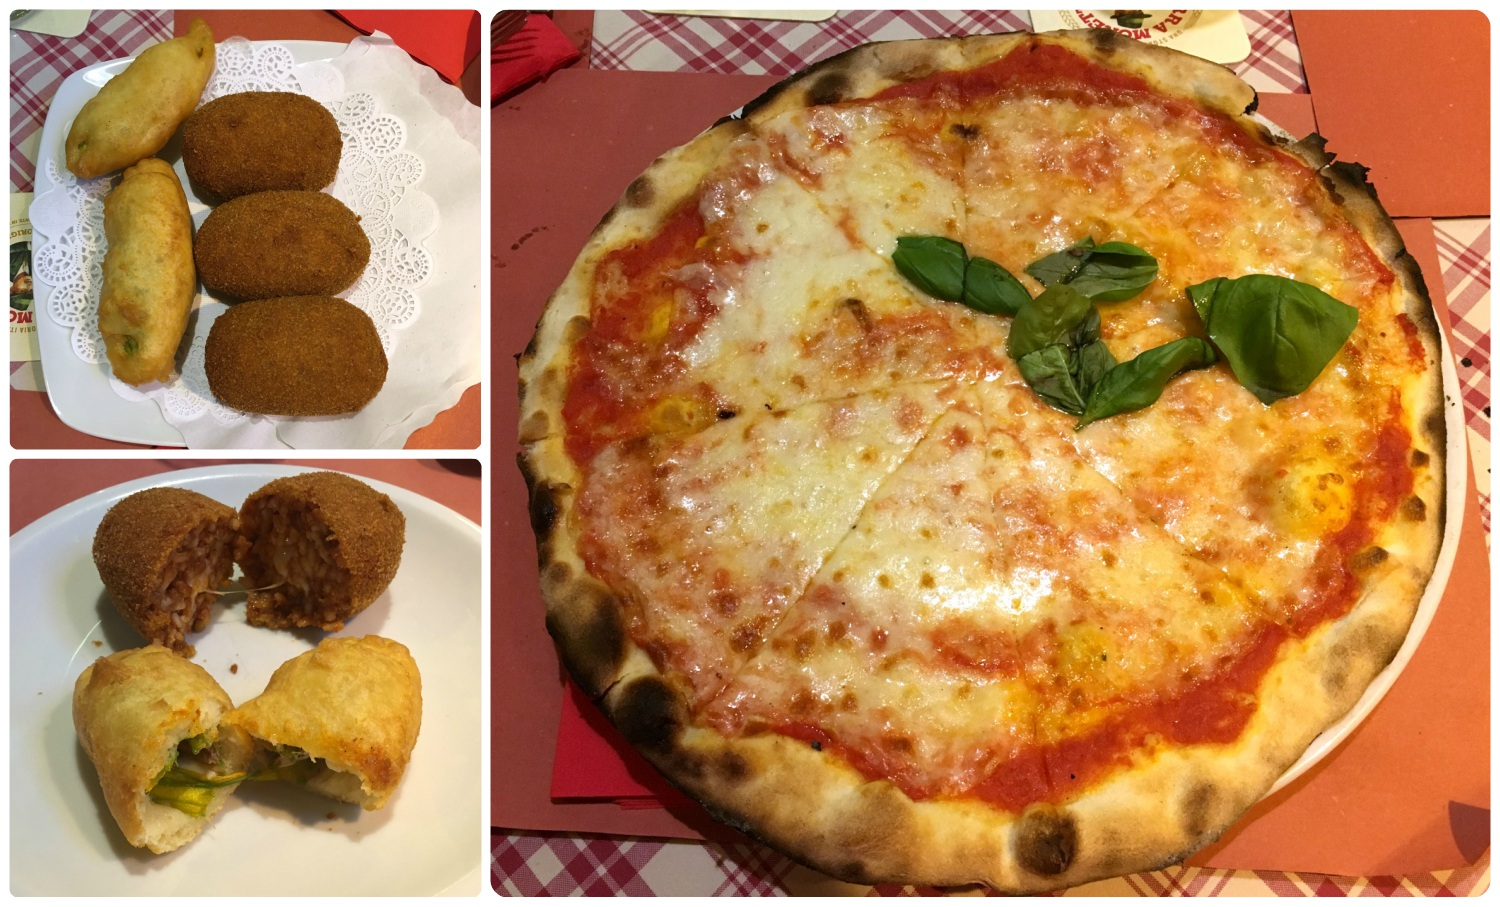 Our food was delivered and hands were shooed away so that we could take these pictures! Wanted restaurant in Rome, Italy.